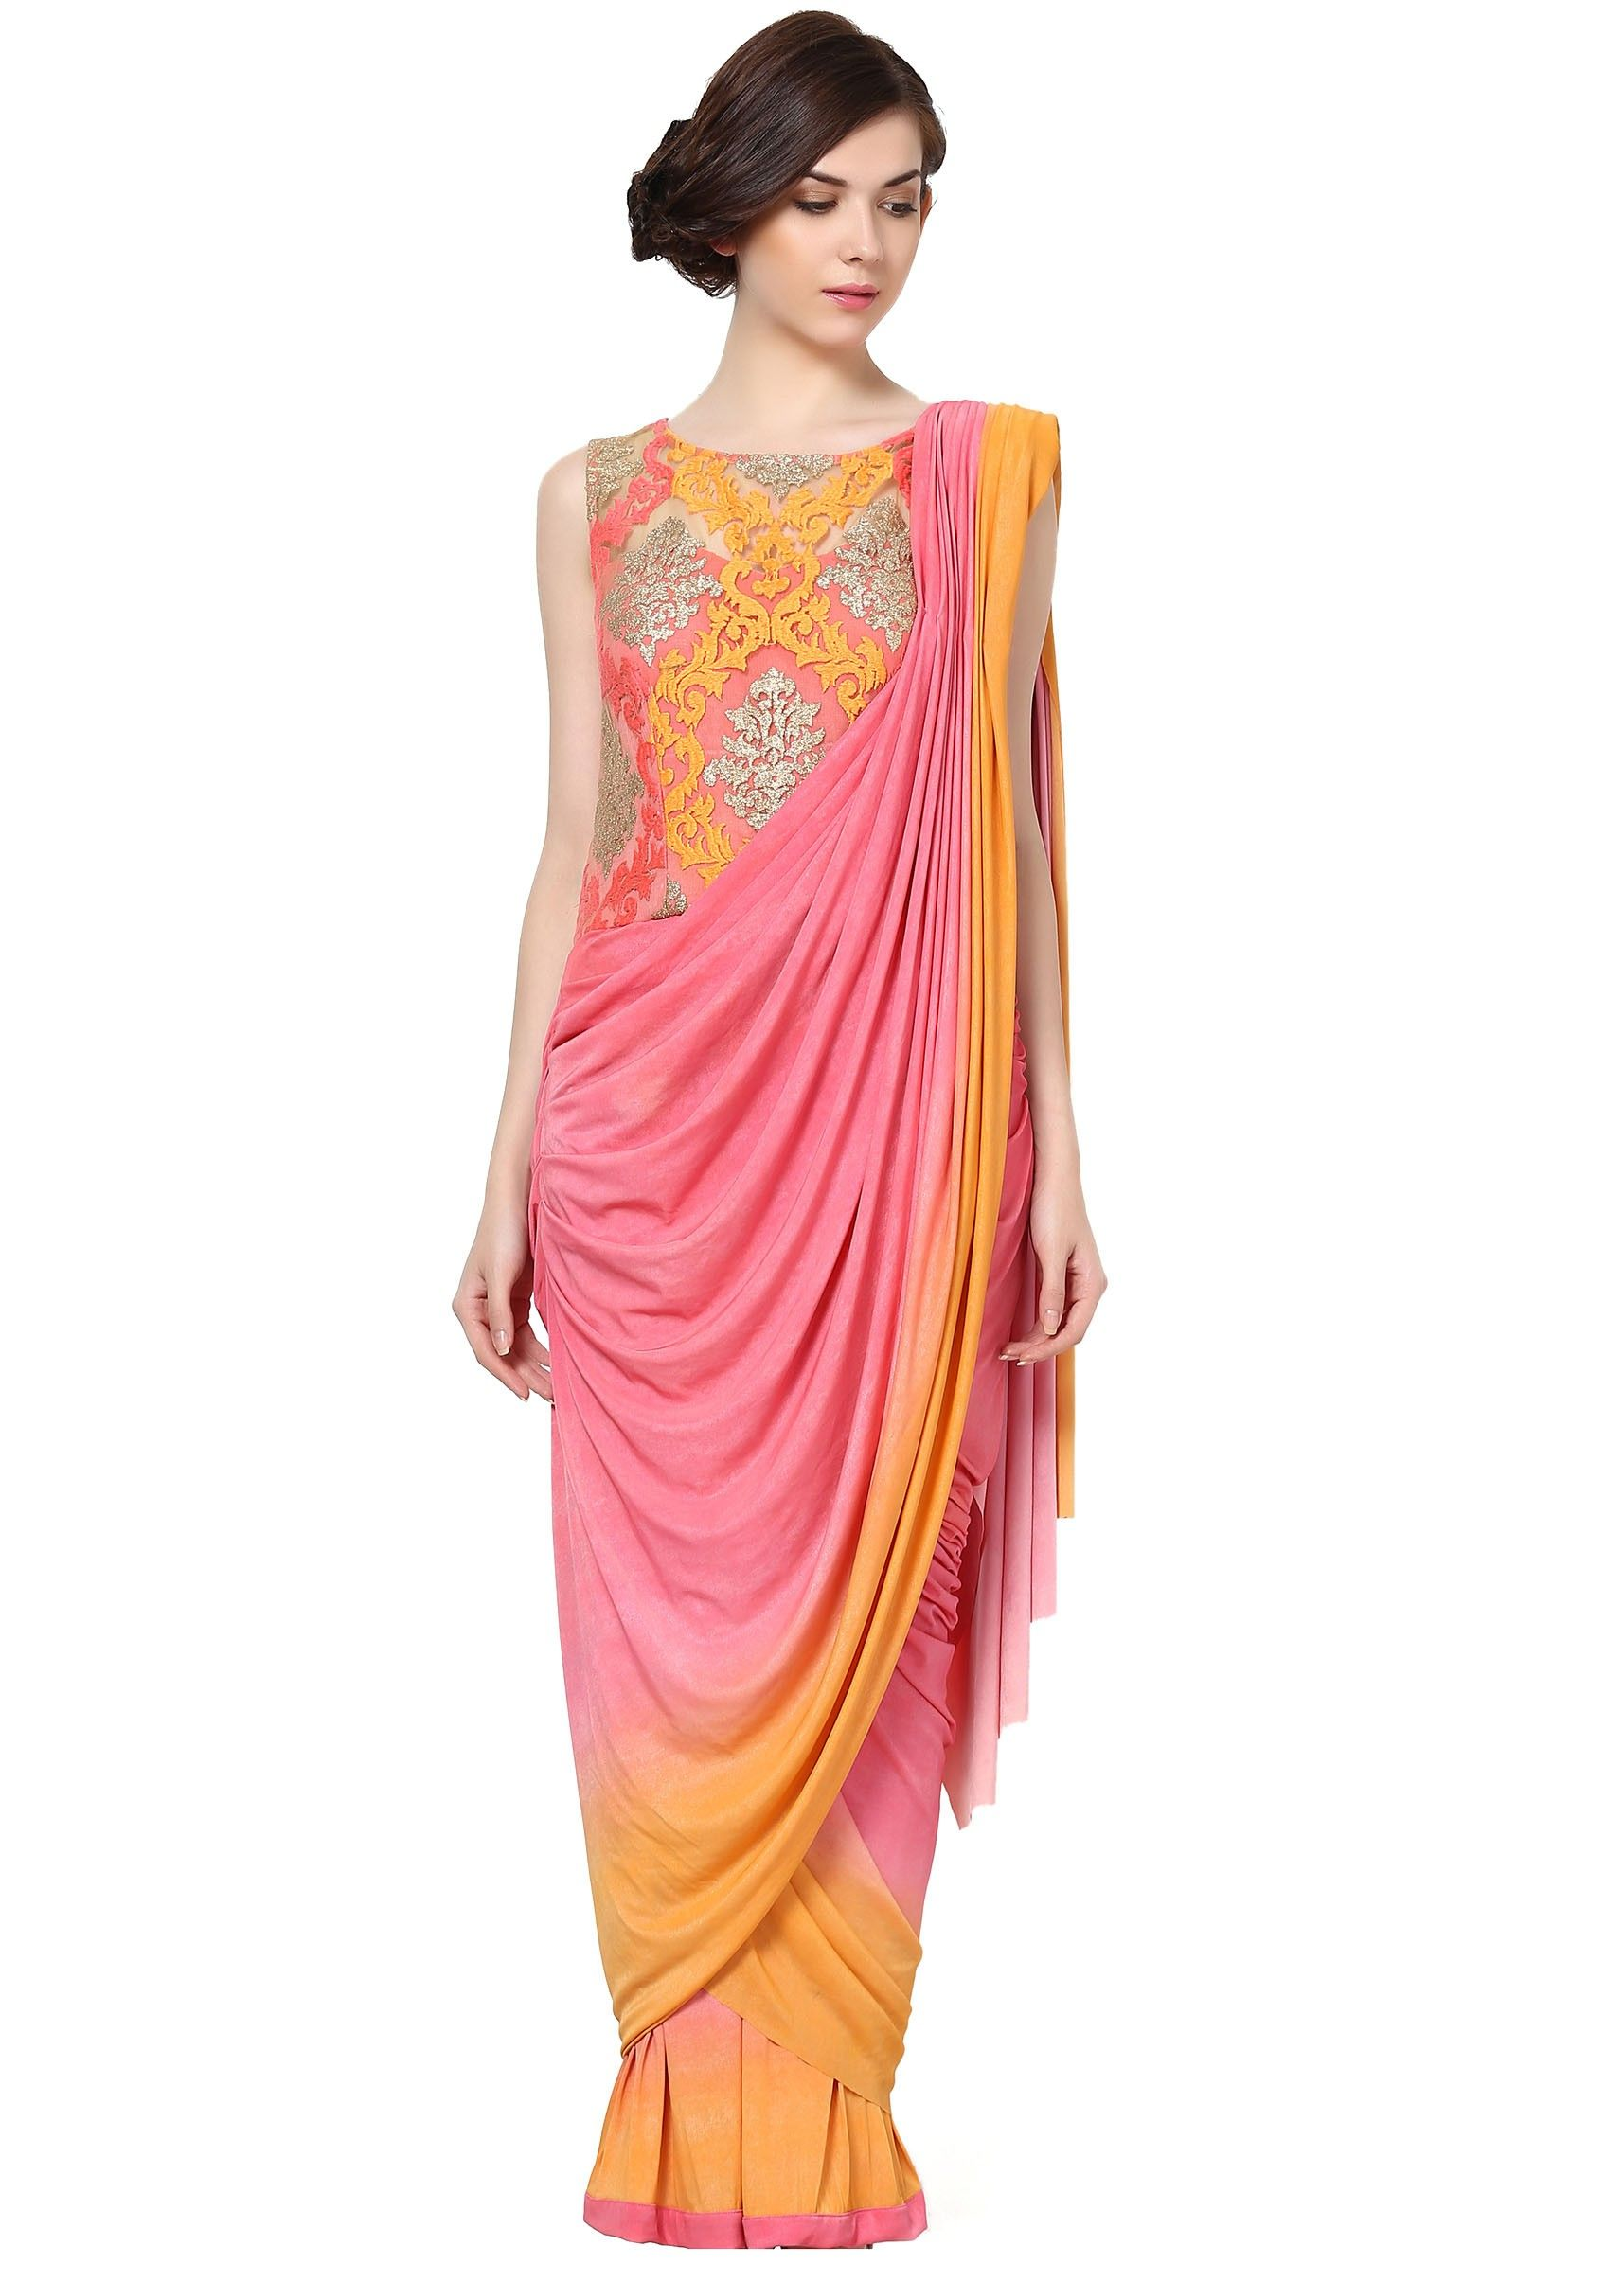 Pink and yellow gown embellished in zari embroidery indian wedding